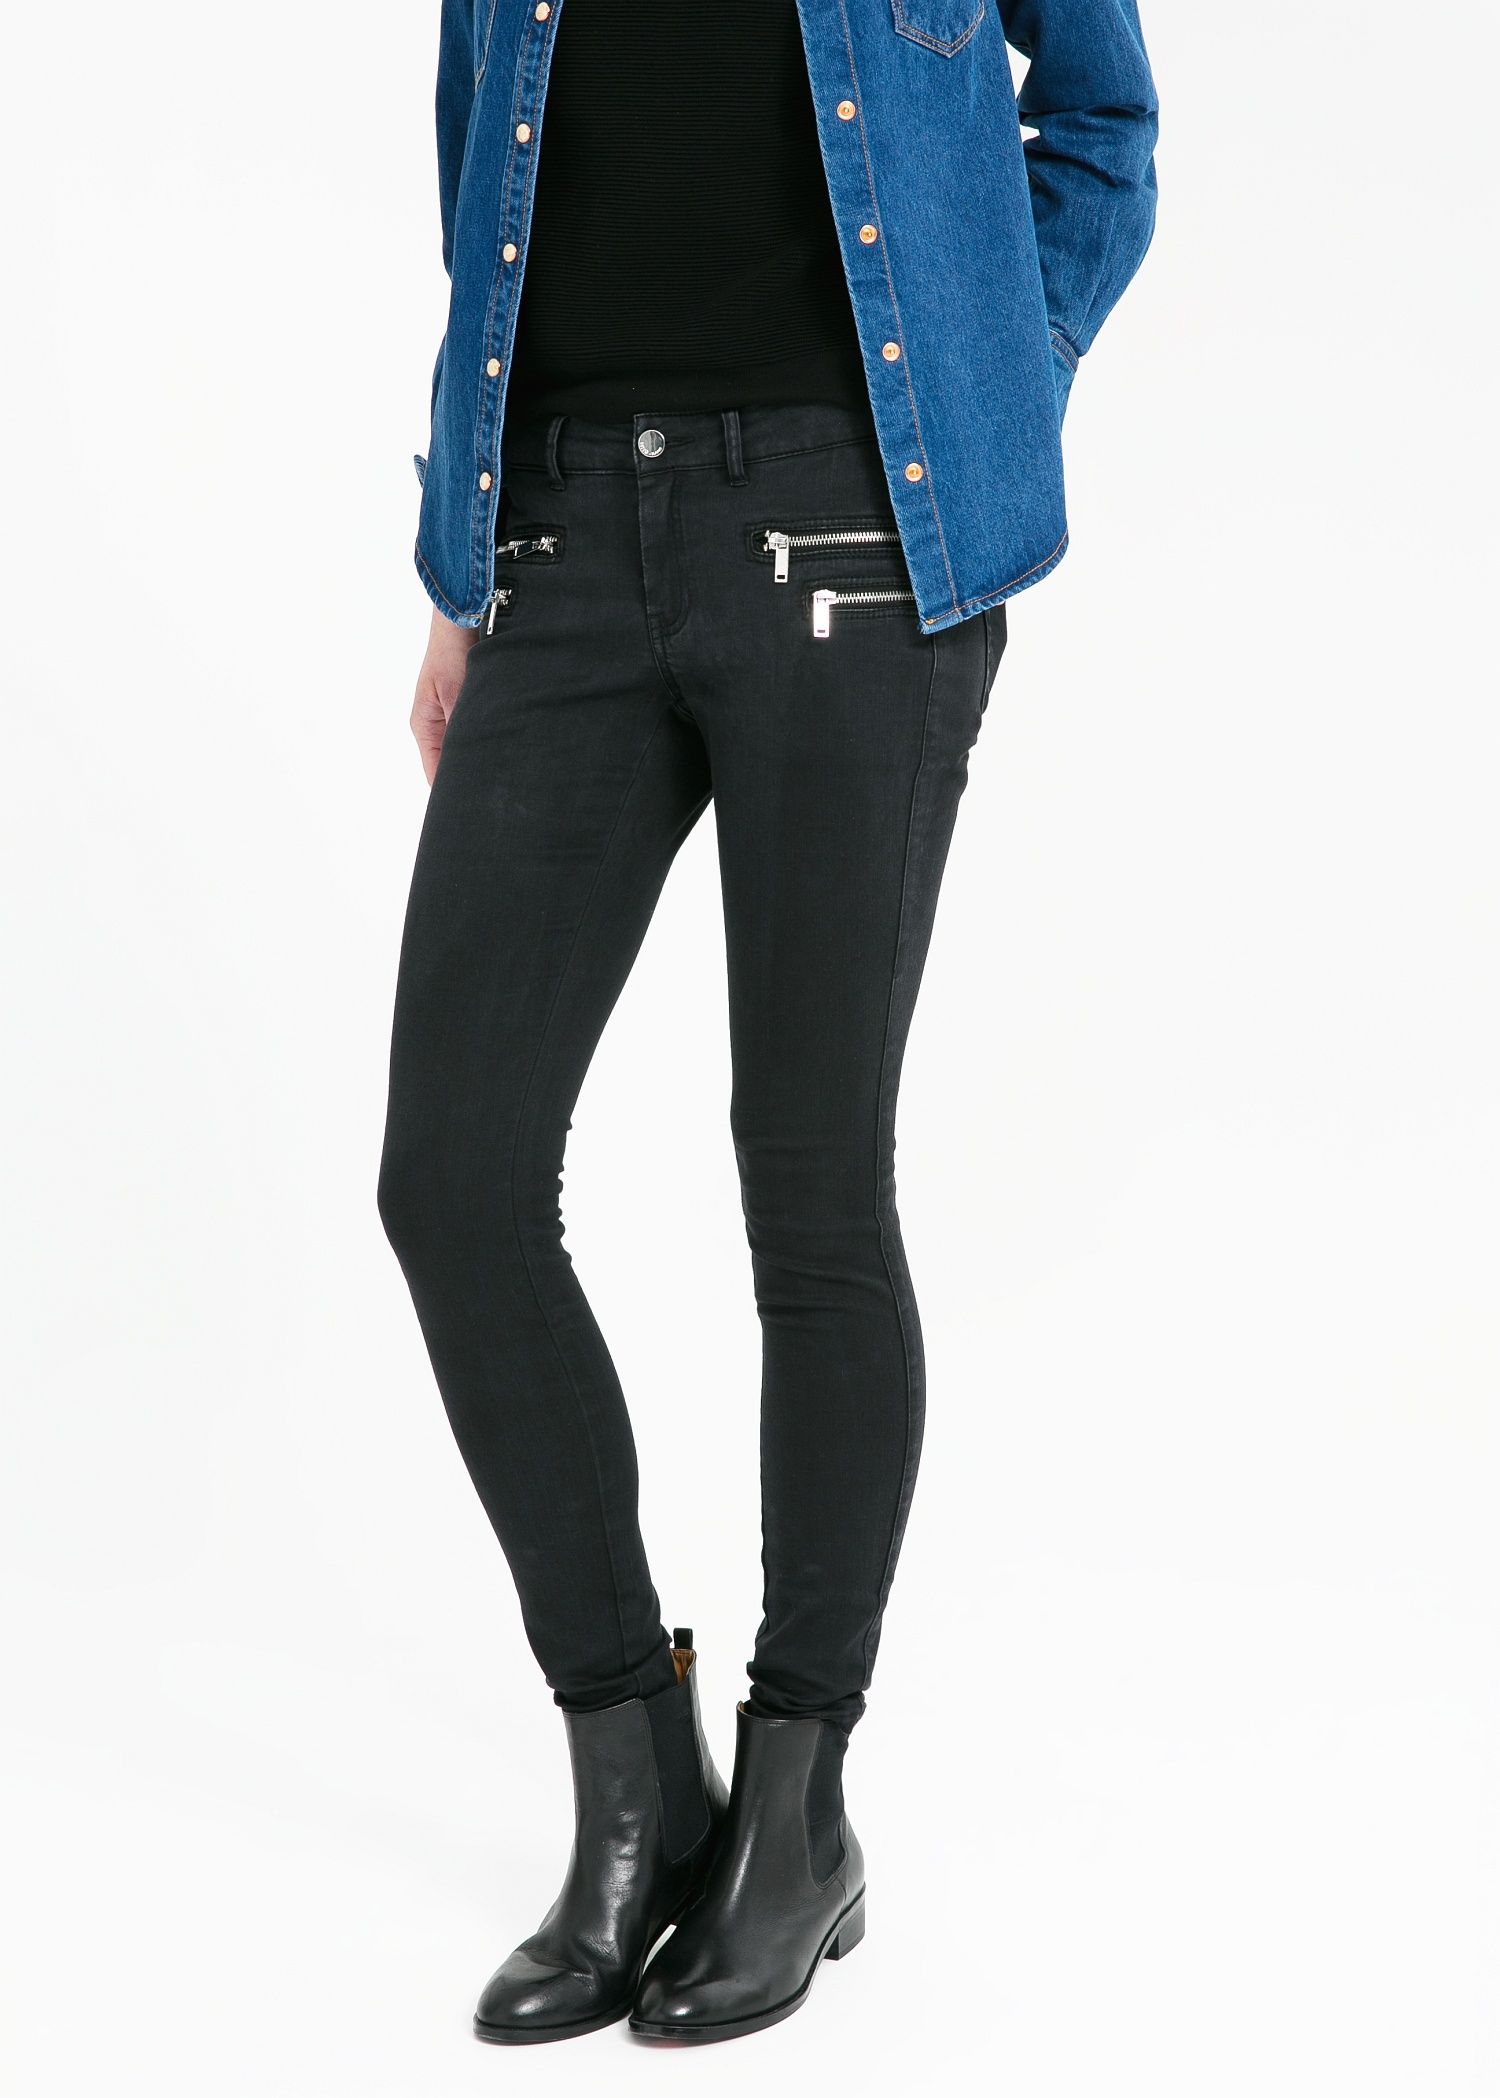 Skinny zippy jeans - Jeans for Women | MANGO